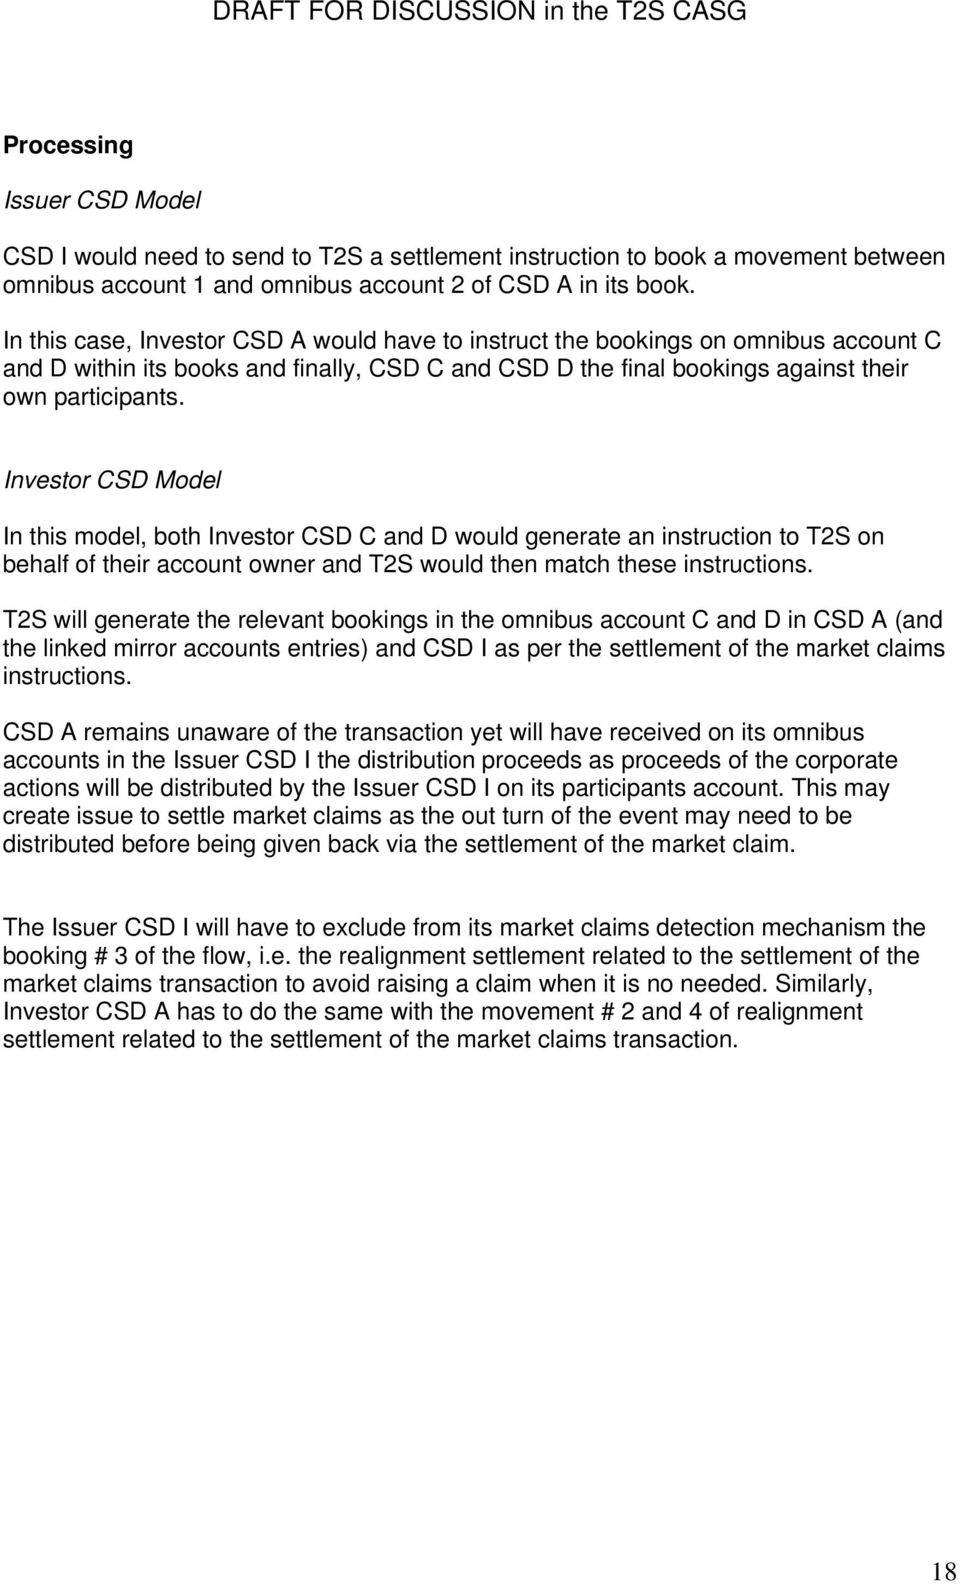 Investor CSD Model In this model, both Investor CSD C and D would generate an instruction to T2S on behalf of their account owner and T2S would then match these instructions.